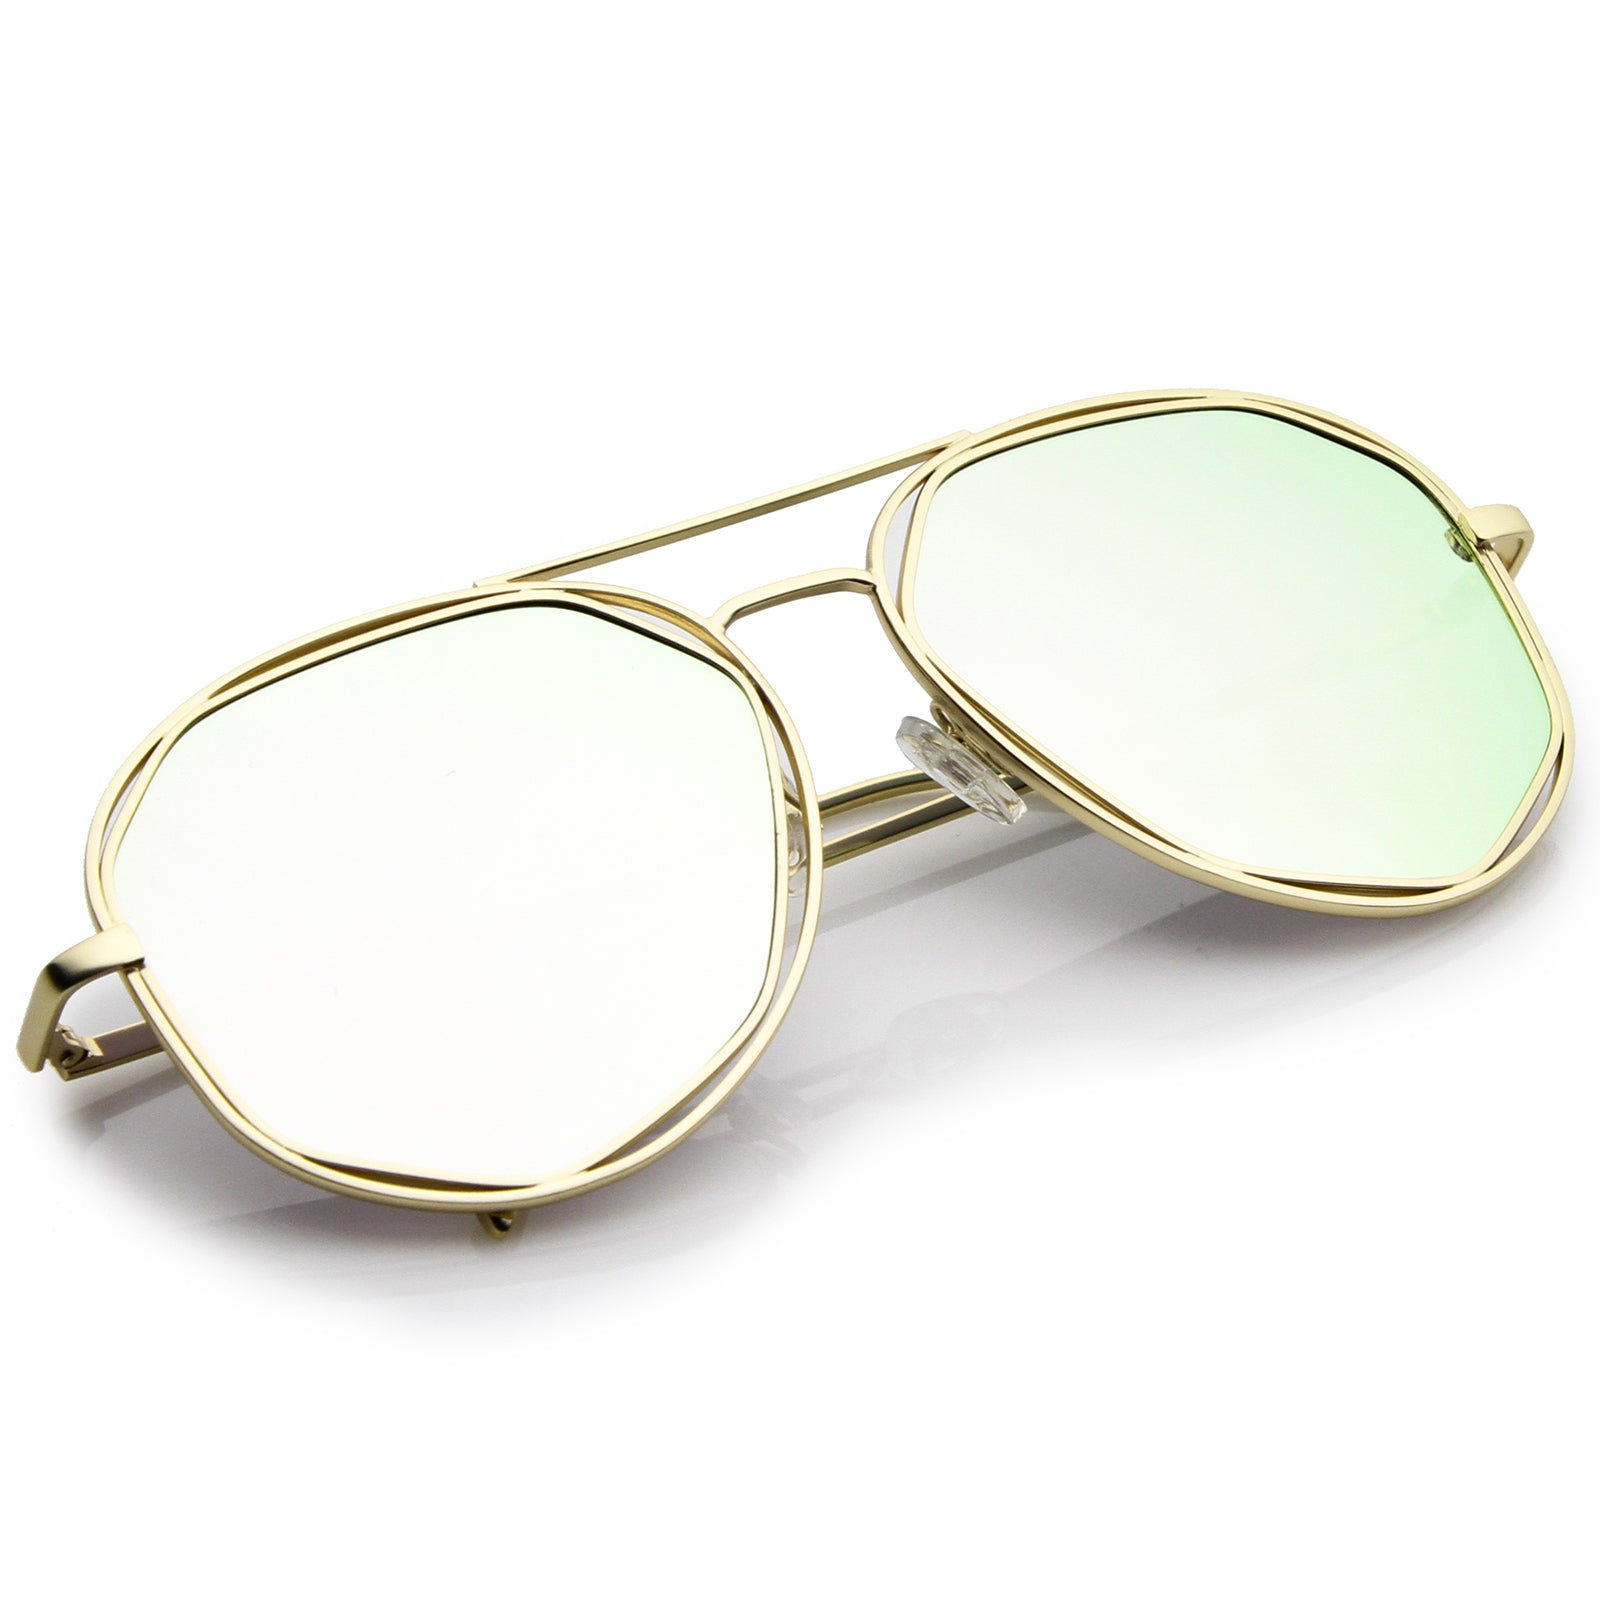 Geometric Hexagonal Metal Frame Colored Mirror Flat Lens Aviator Sunglasses 60mm - sunglass.la - 4